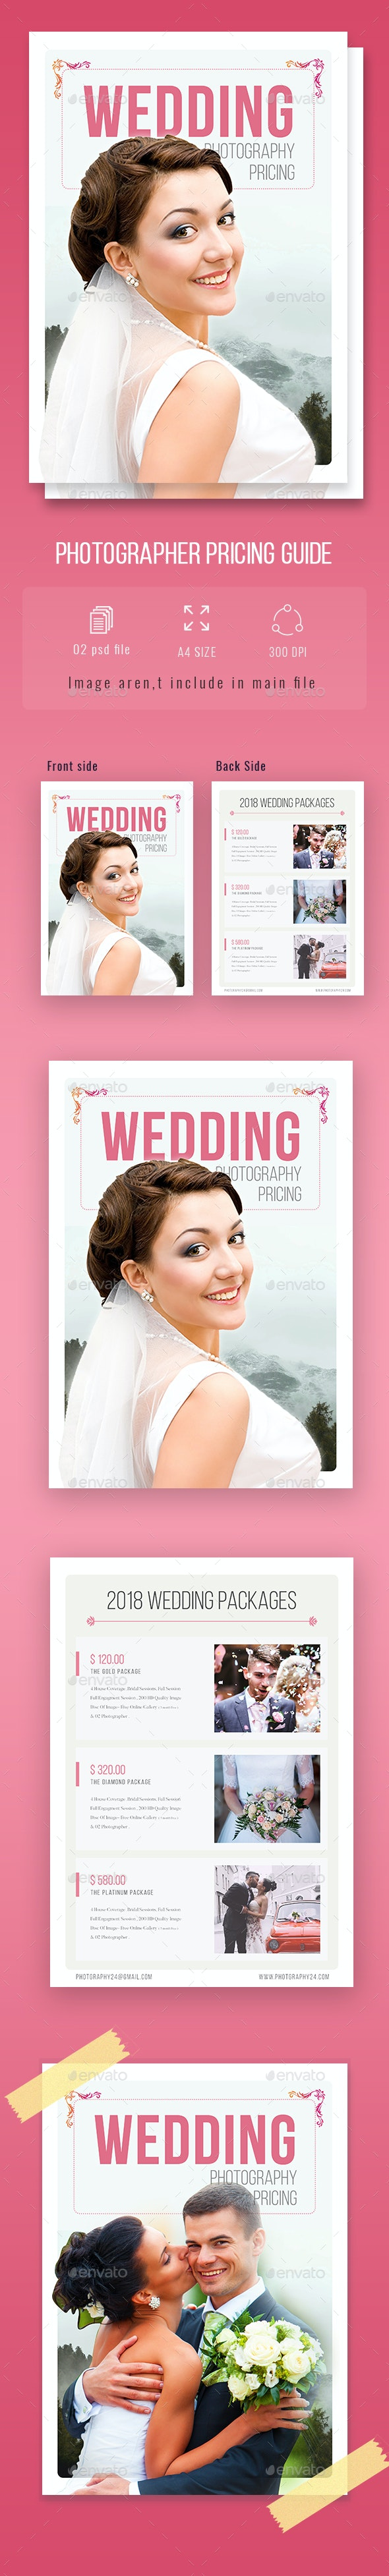 Wedding Photography Price Guide - Flyers Print Templates